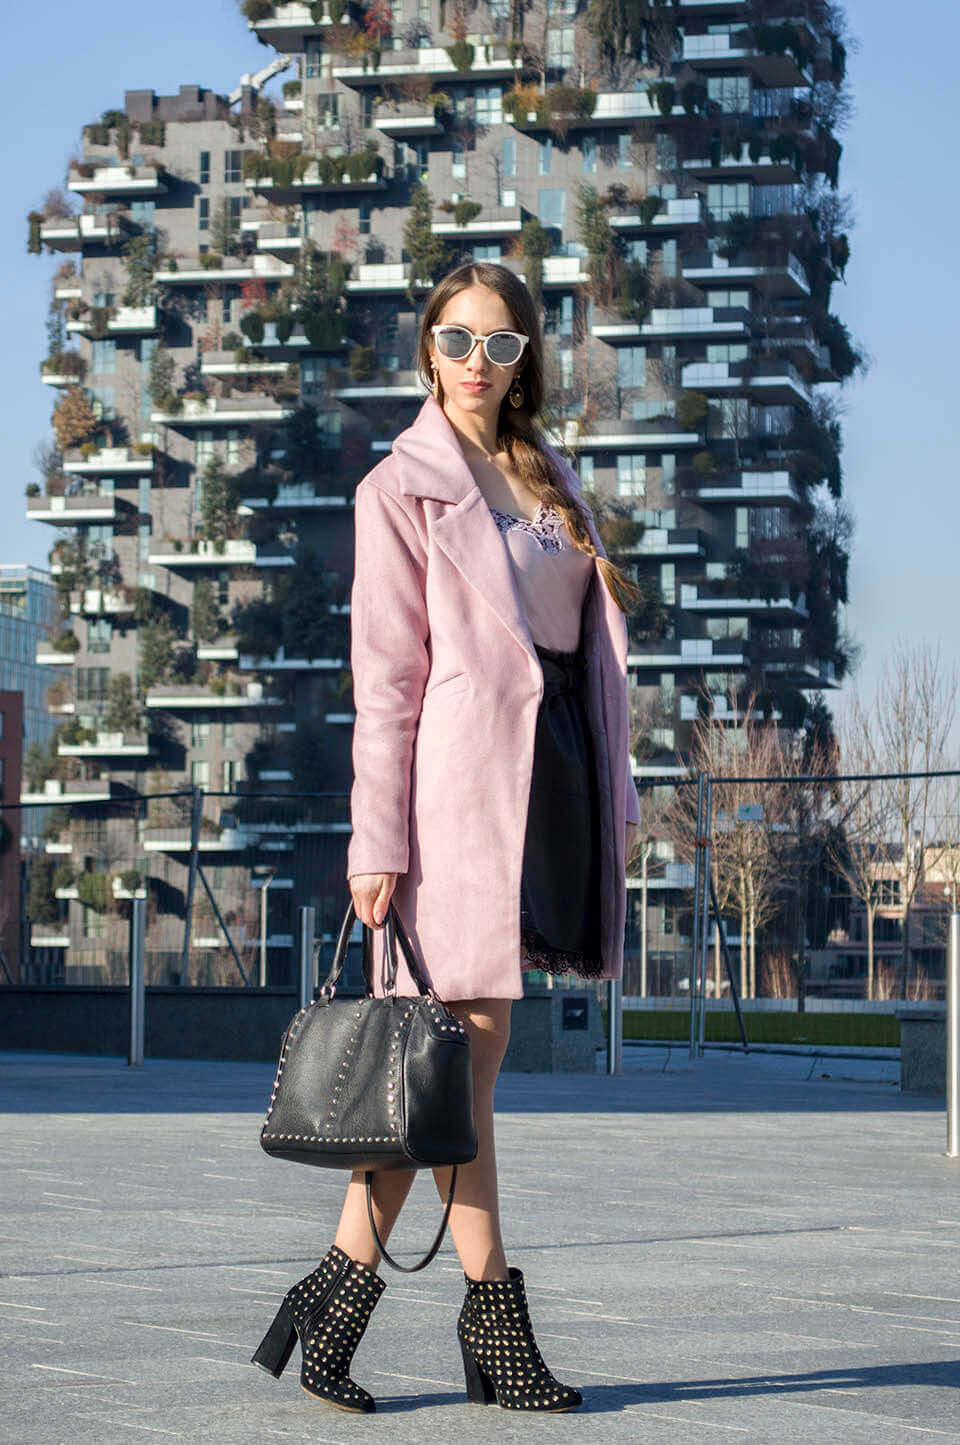 Manu Luize - Powder pink coat